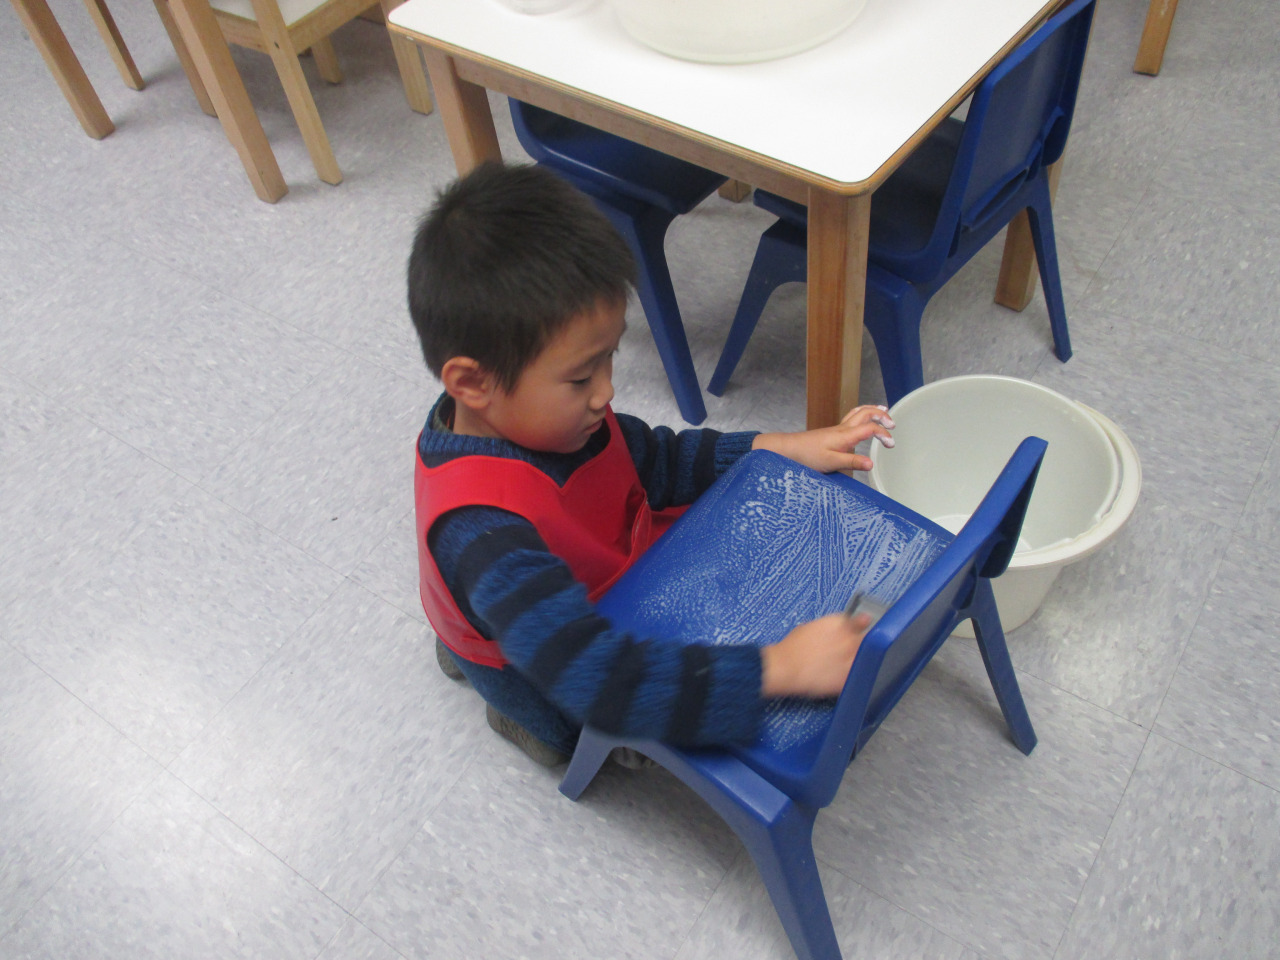 The Primary 1 Kindergarteners took pride in scrubbing their own chairs.  They marked them with their name tags and then sat on them during lunch time.